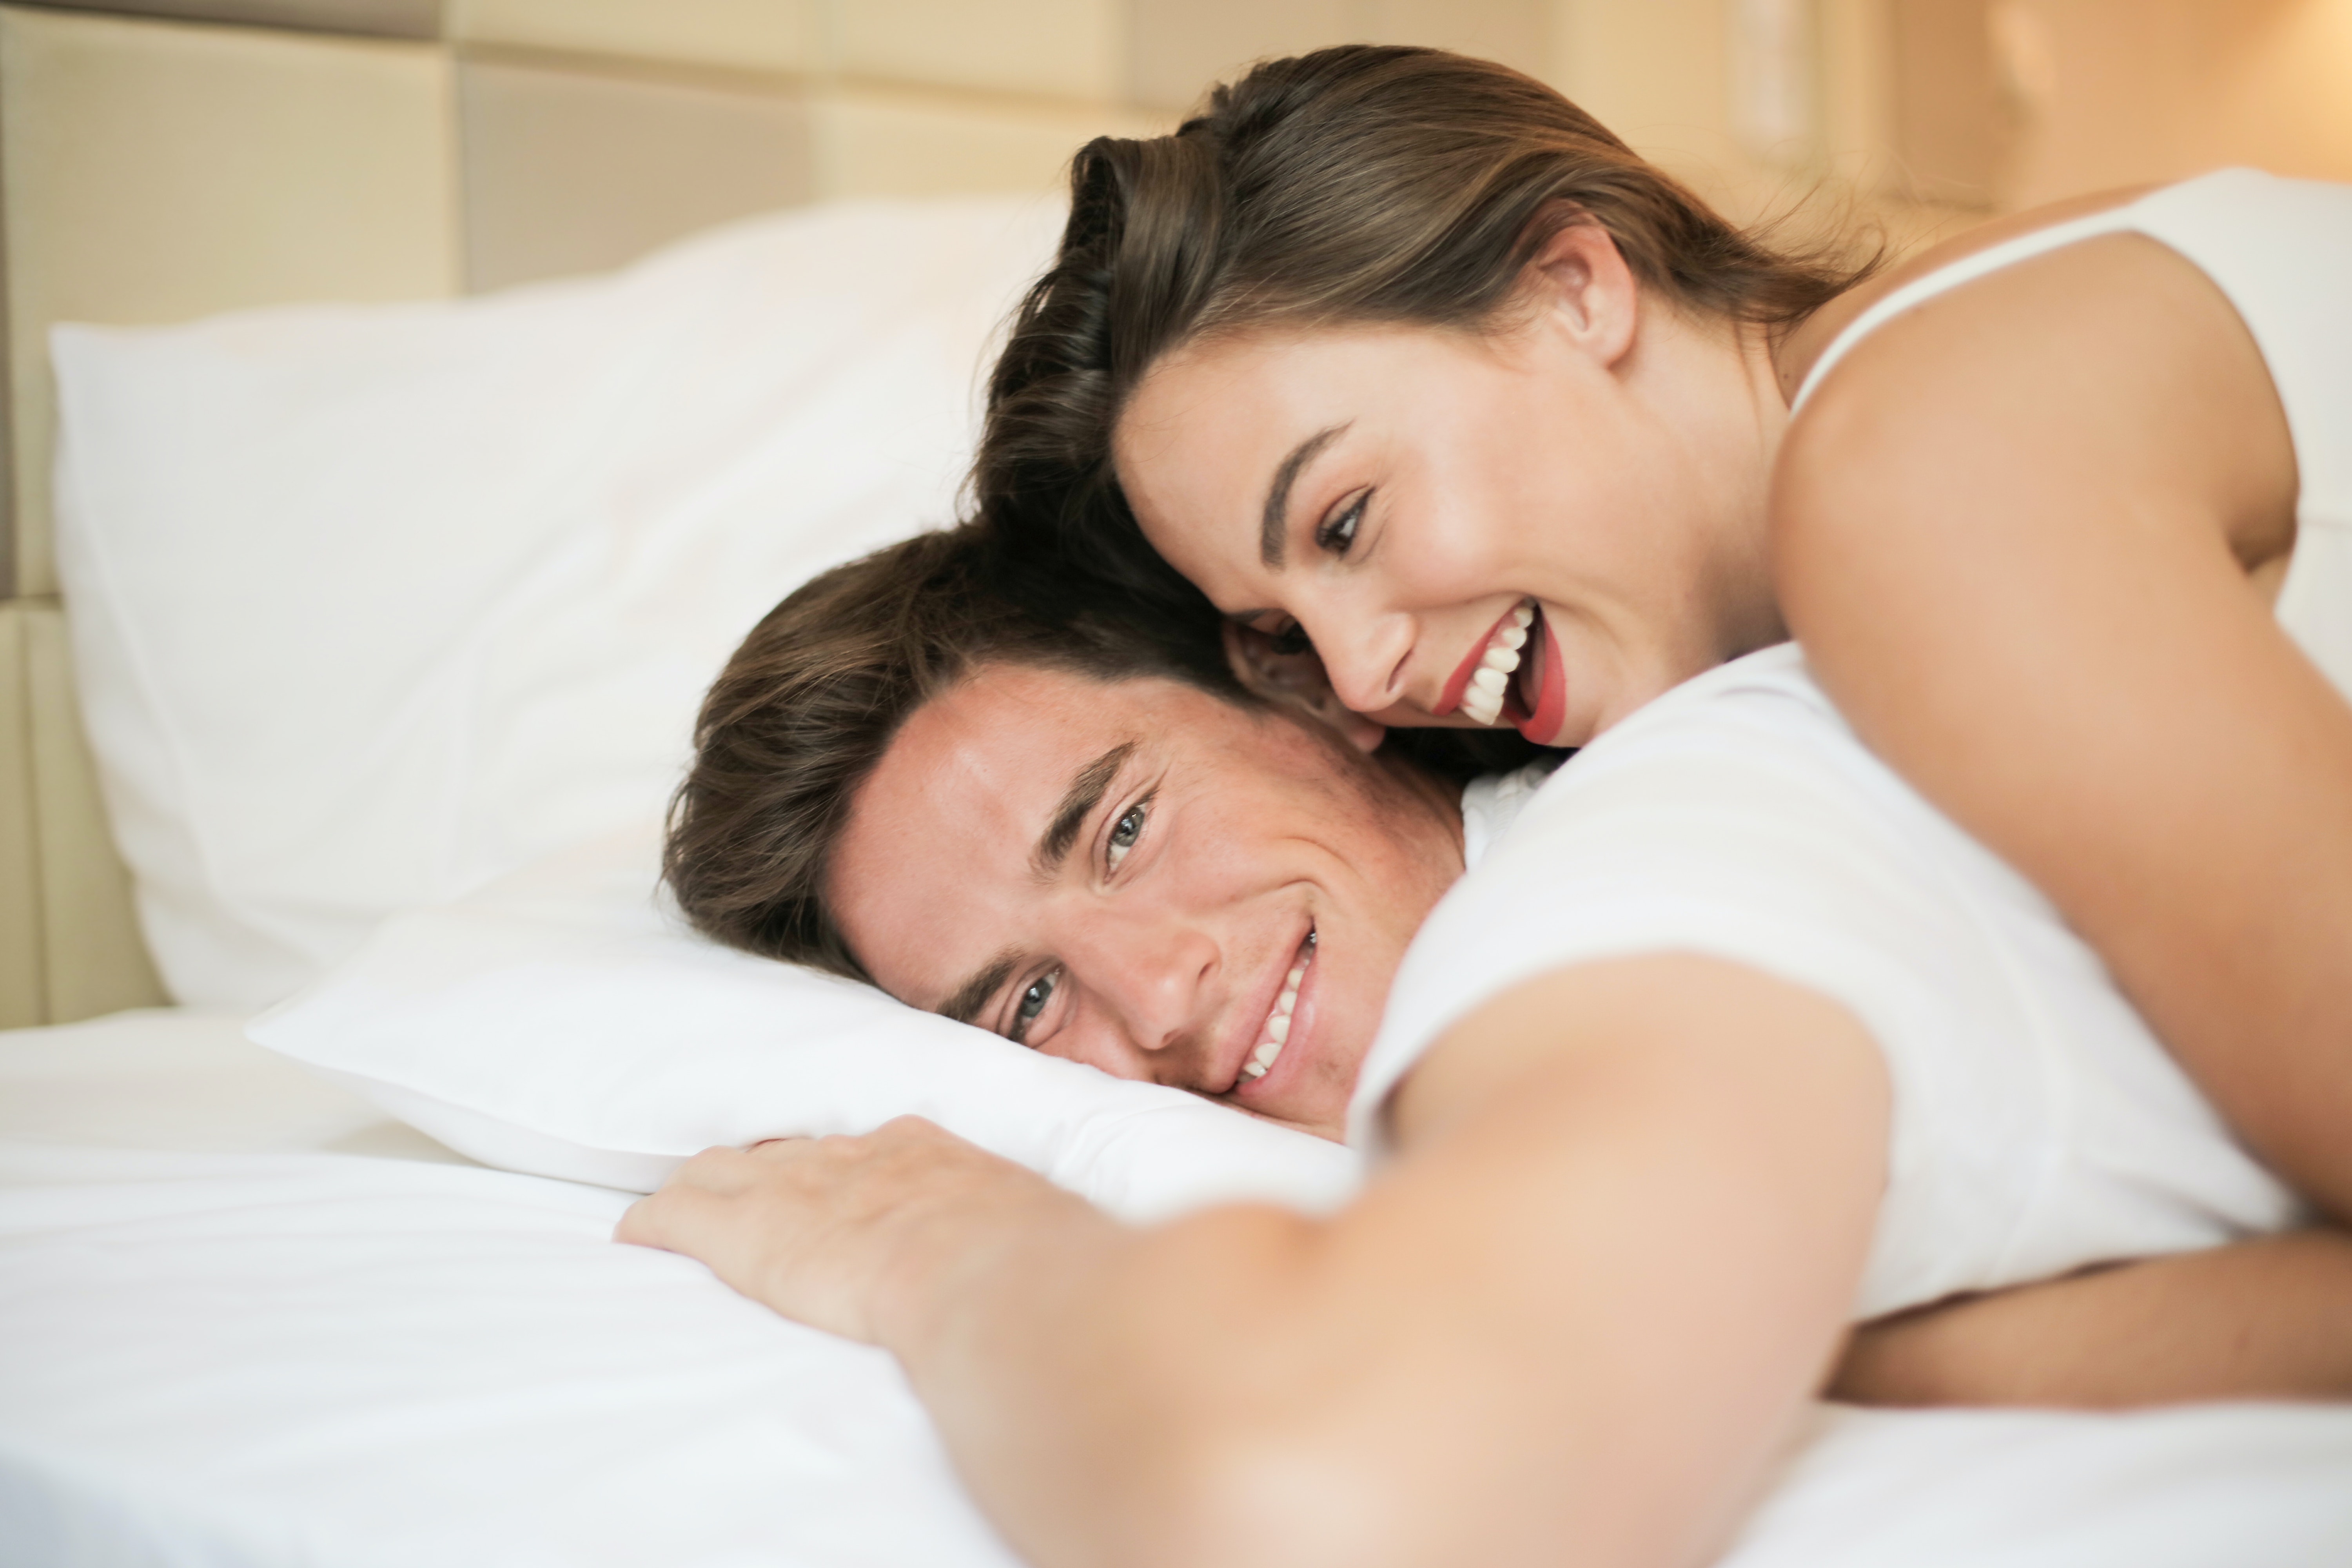 Cheerful Couple Hugging On Bed In Comfortable Bedroom Free Stock Photo